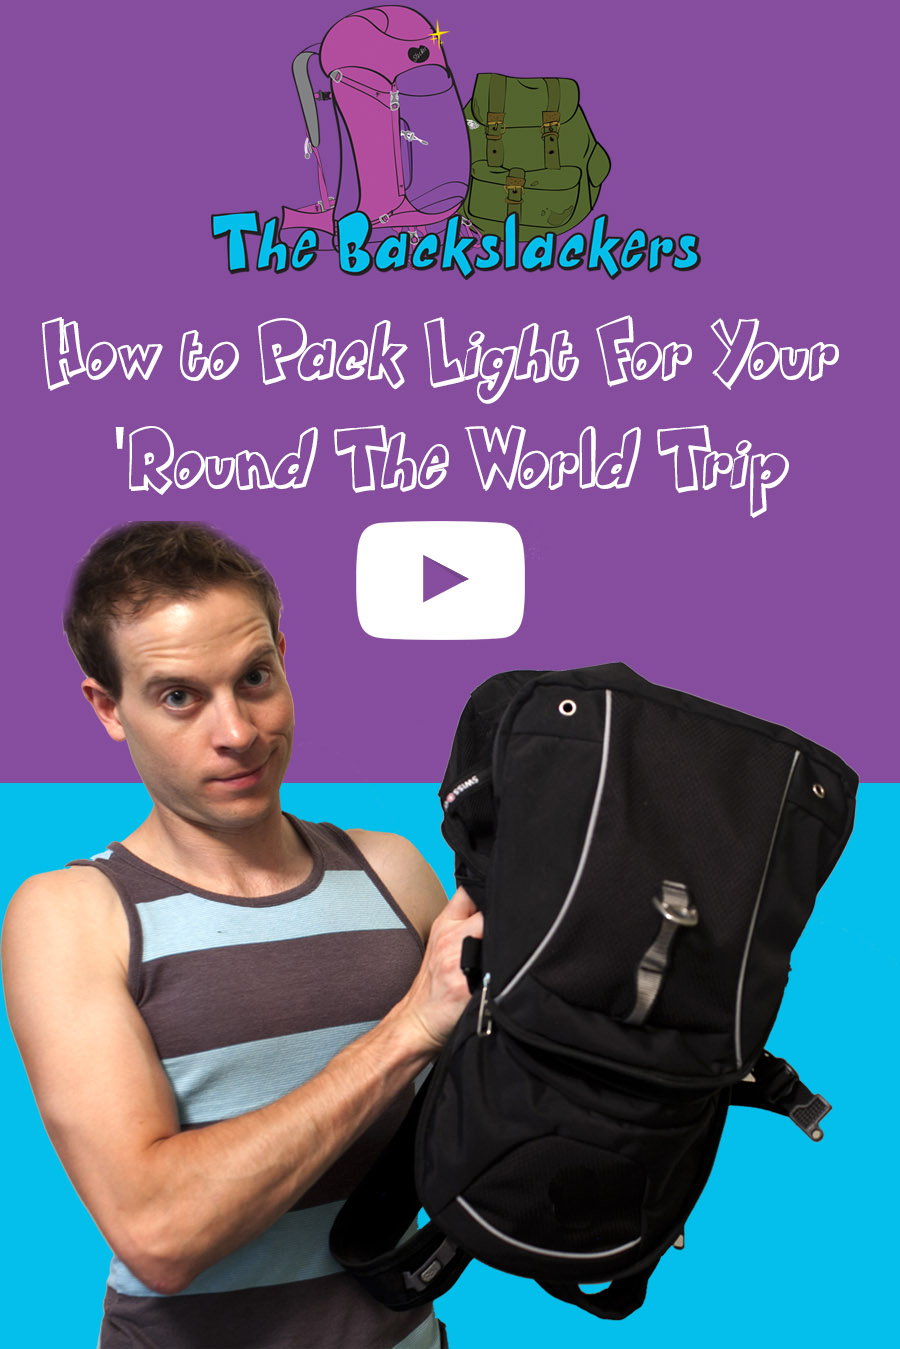 Video: How to Pack Light for Your 'Round the World Trip